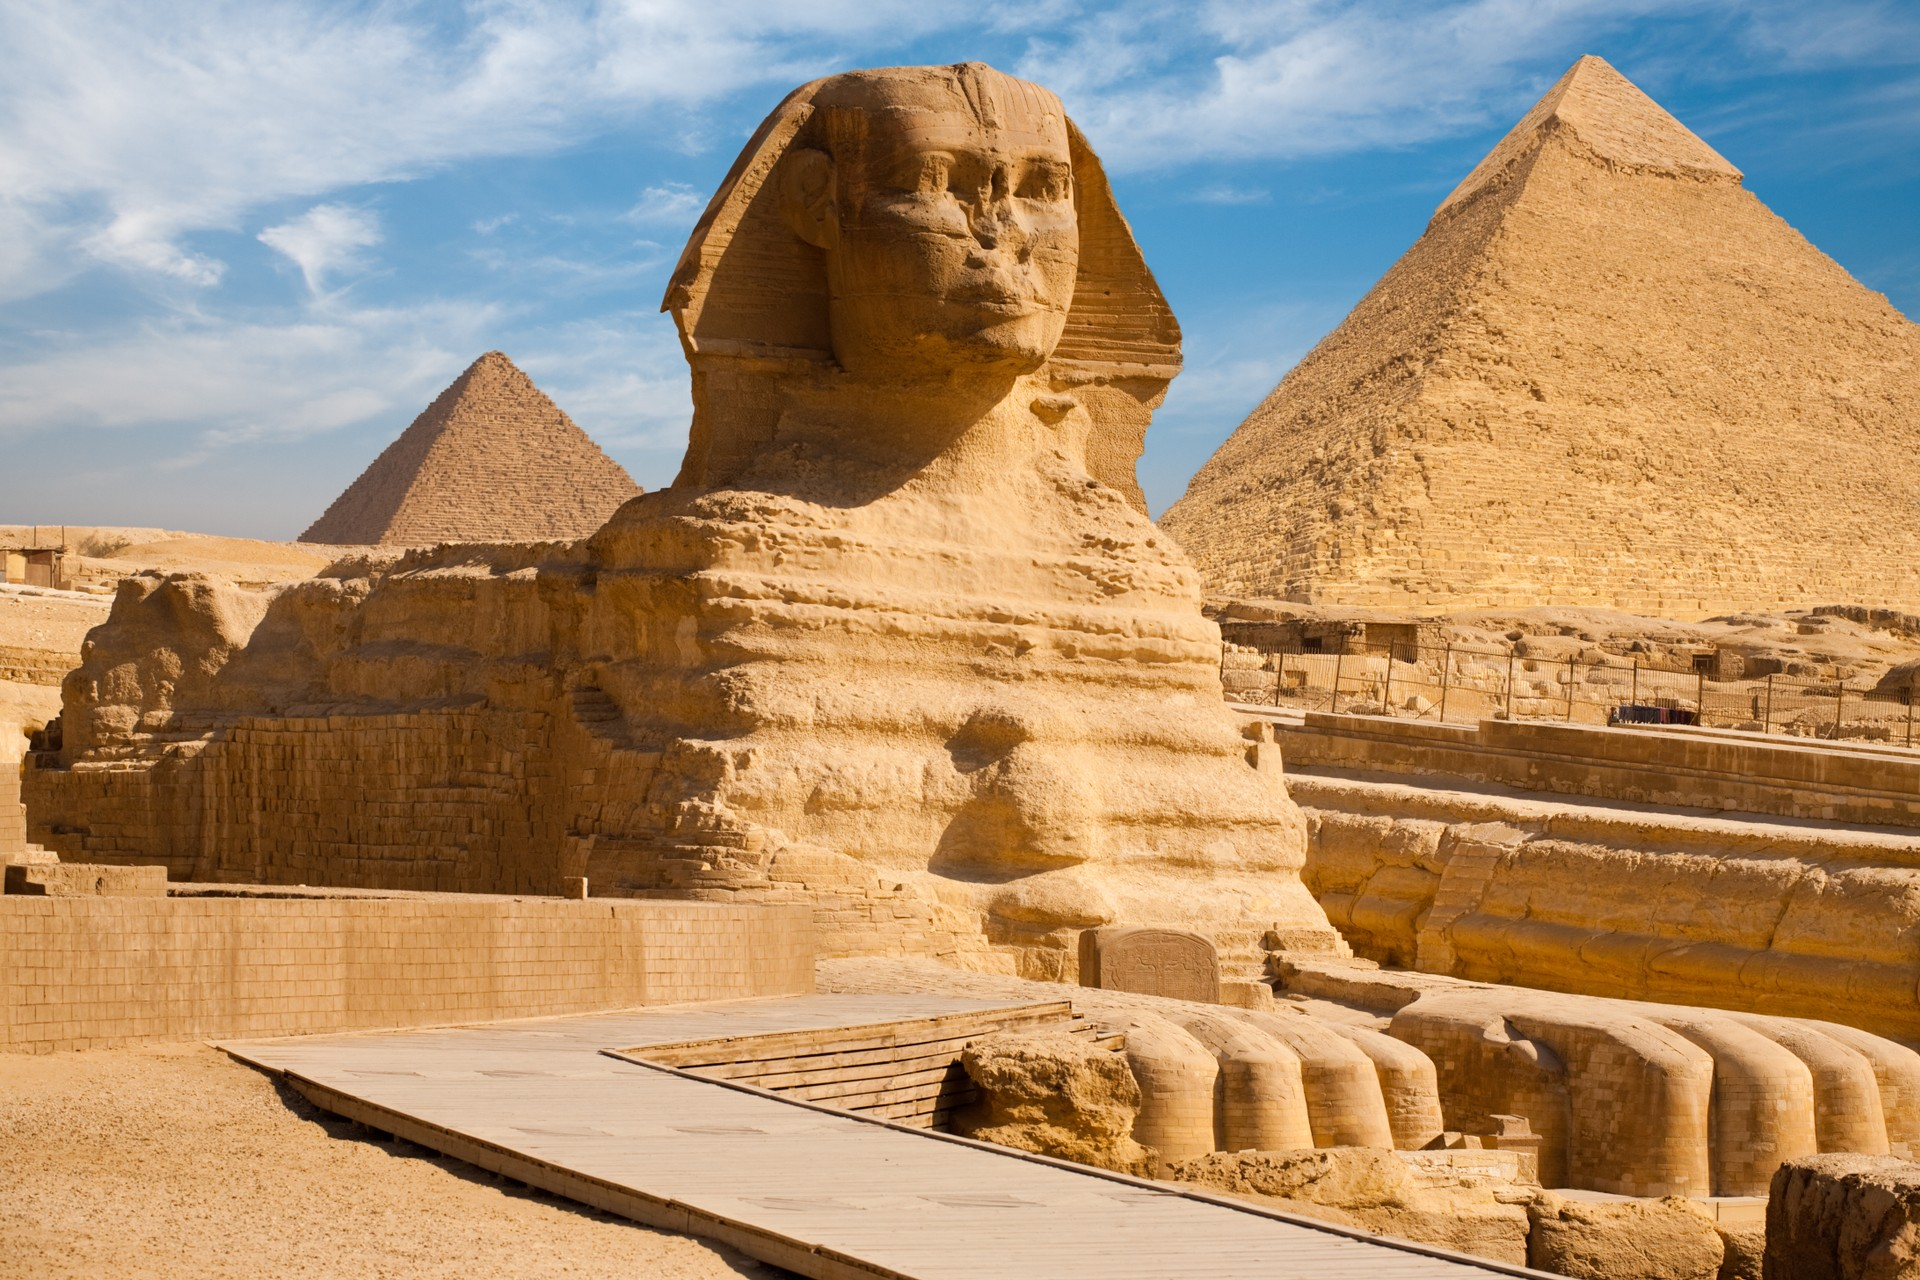 Pyramids of Giza and their Sphinx, Egypt